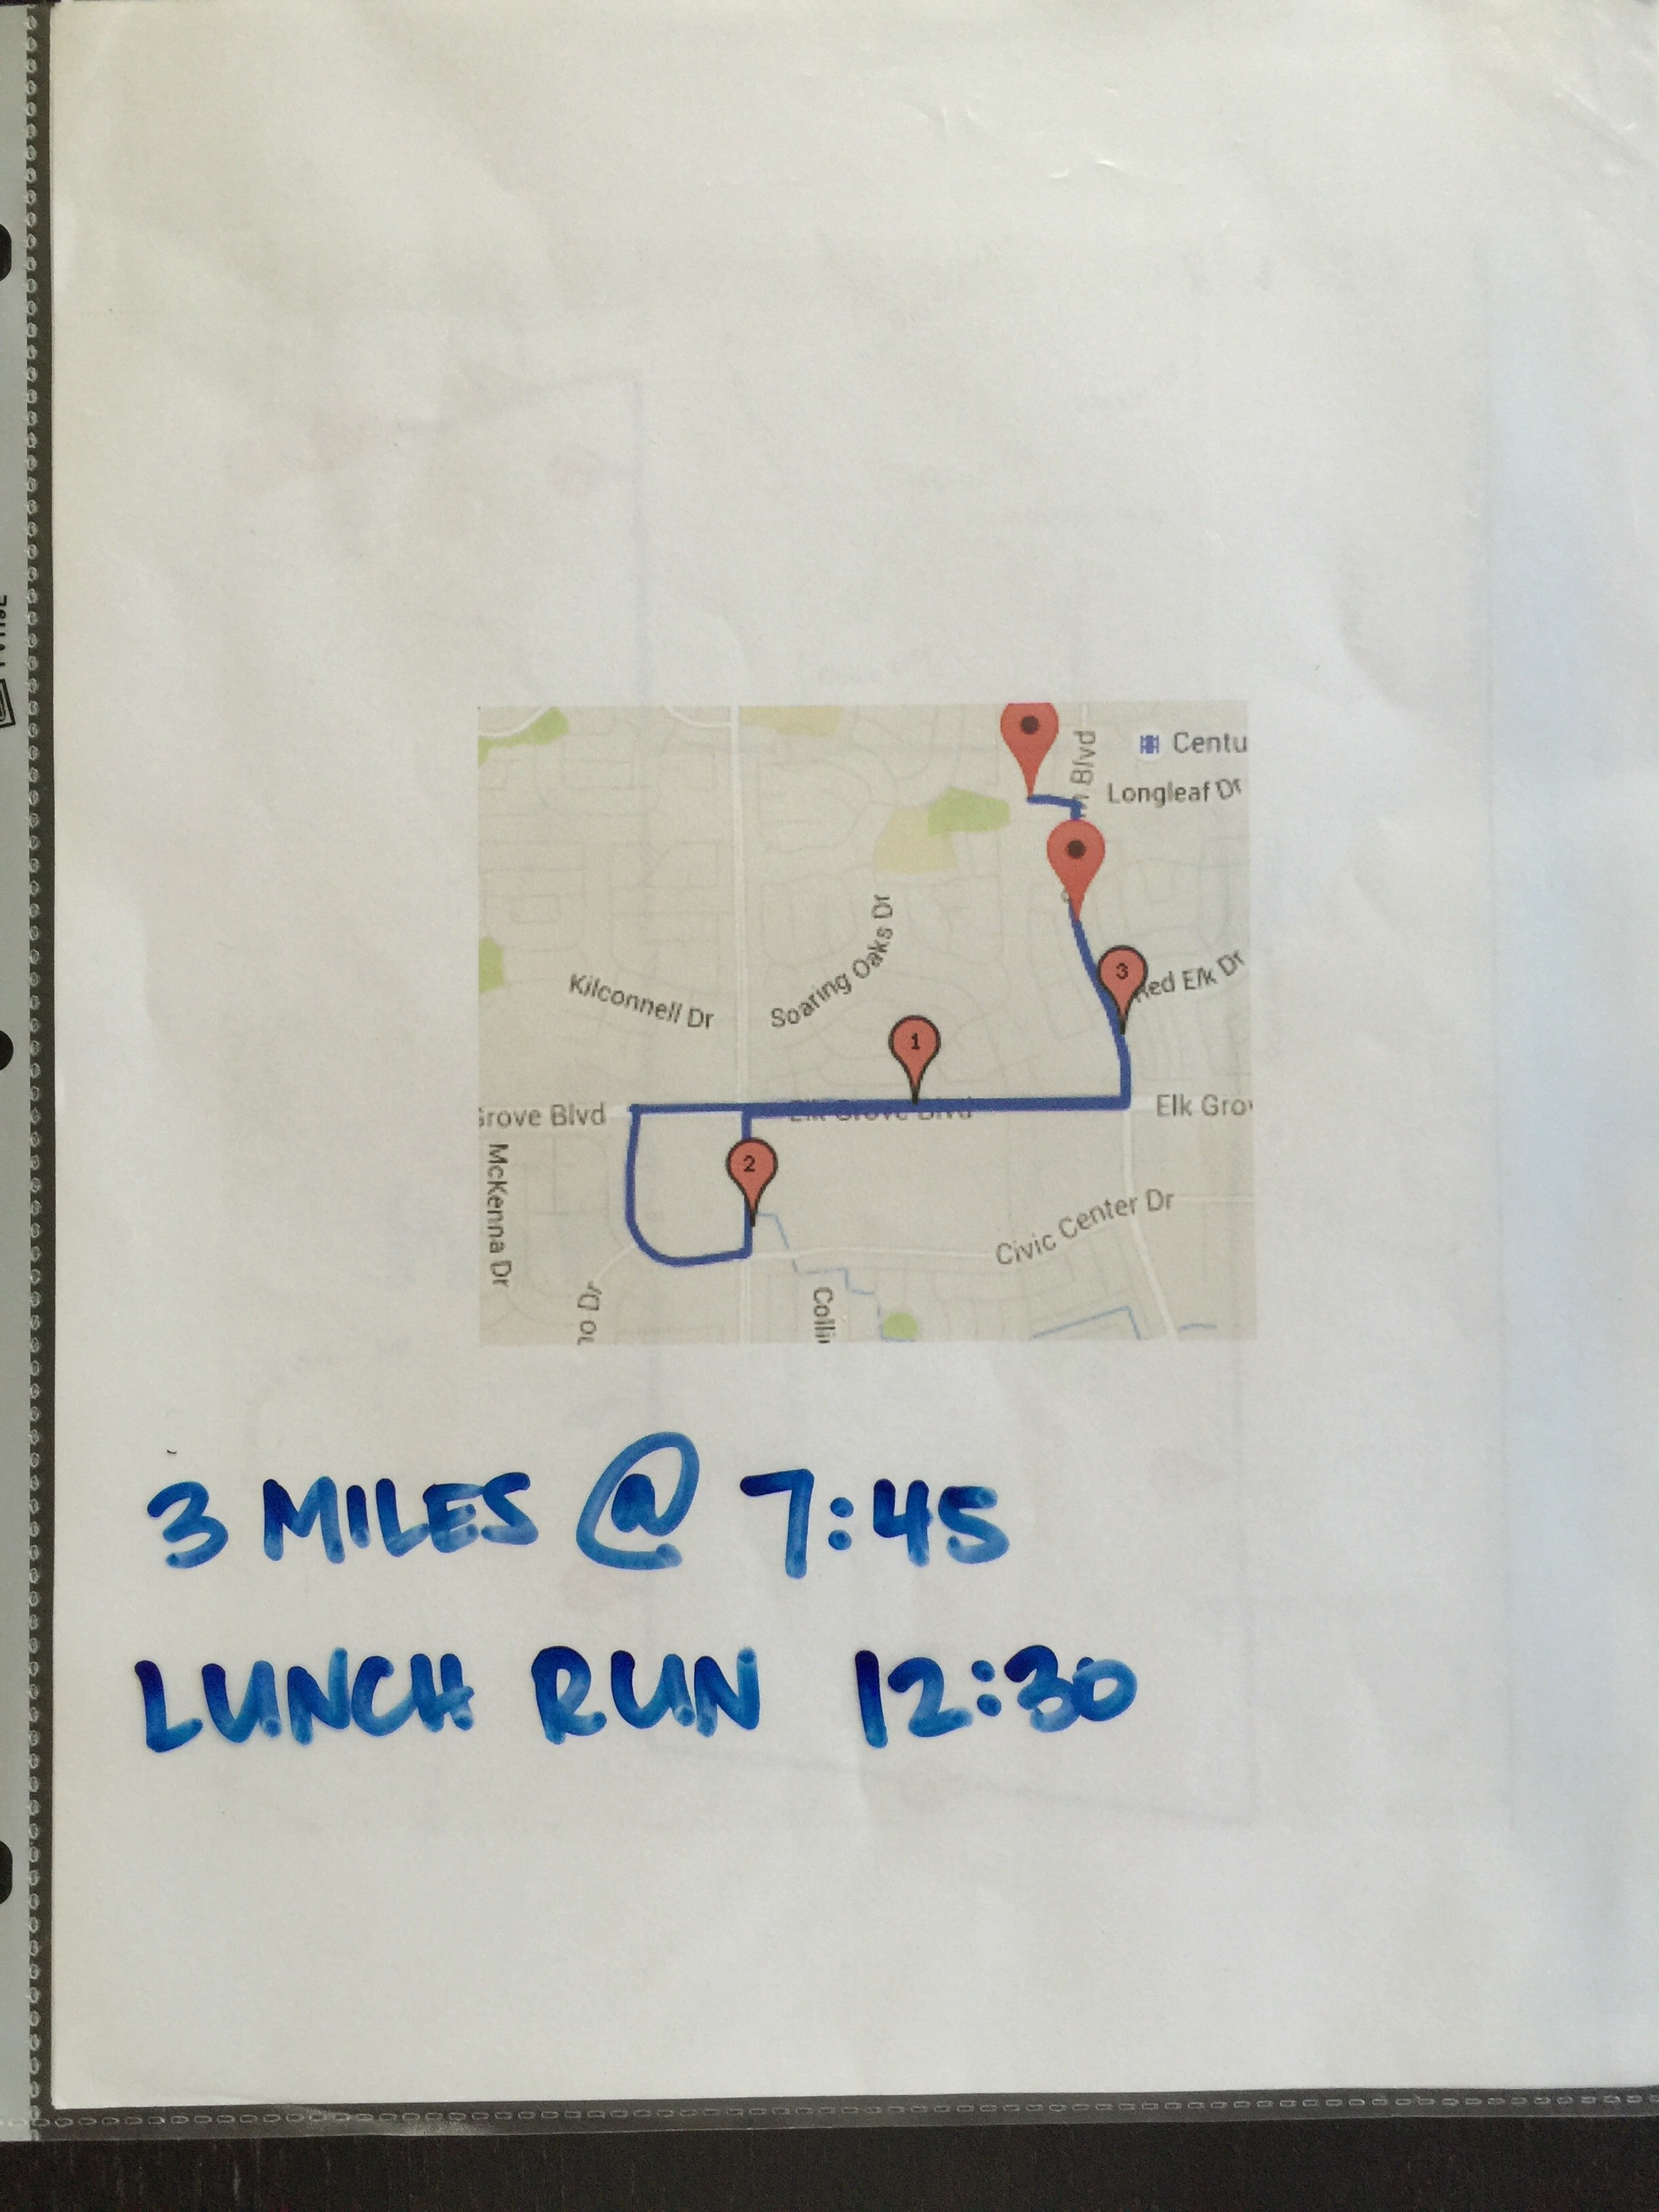 Easy to print out route and put them in a sheet protector. Dry erase marker makes it reuseable